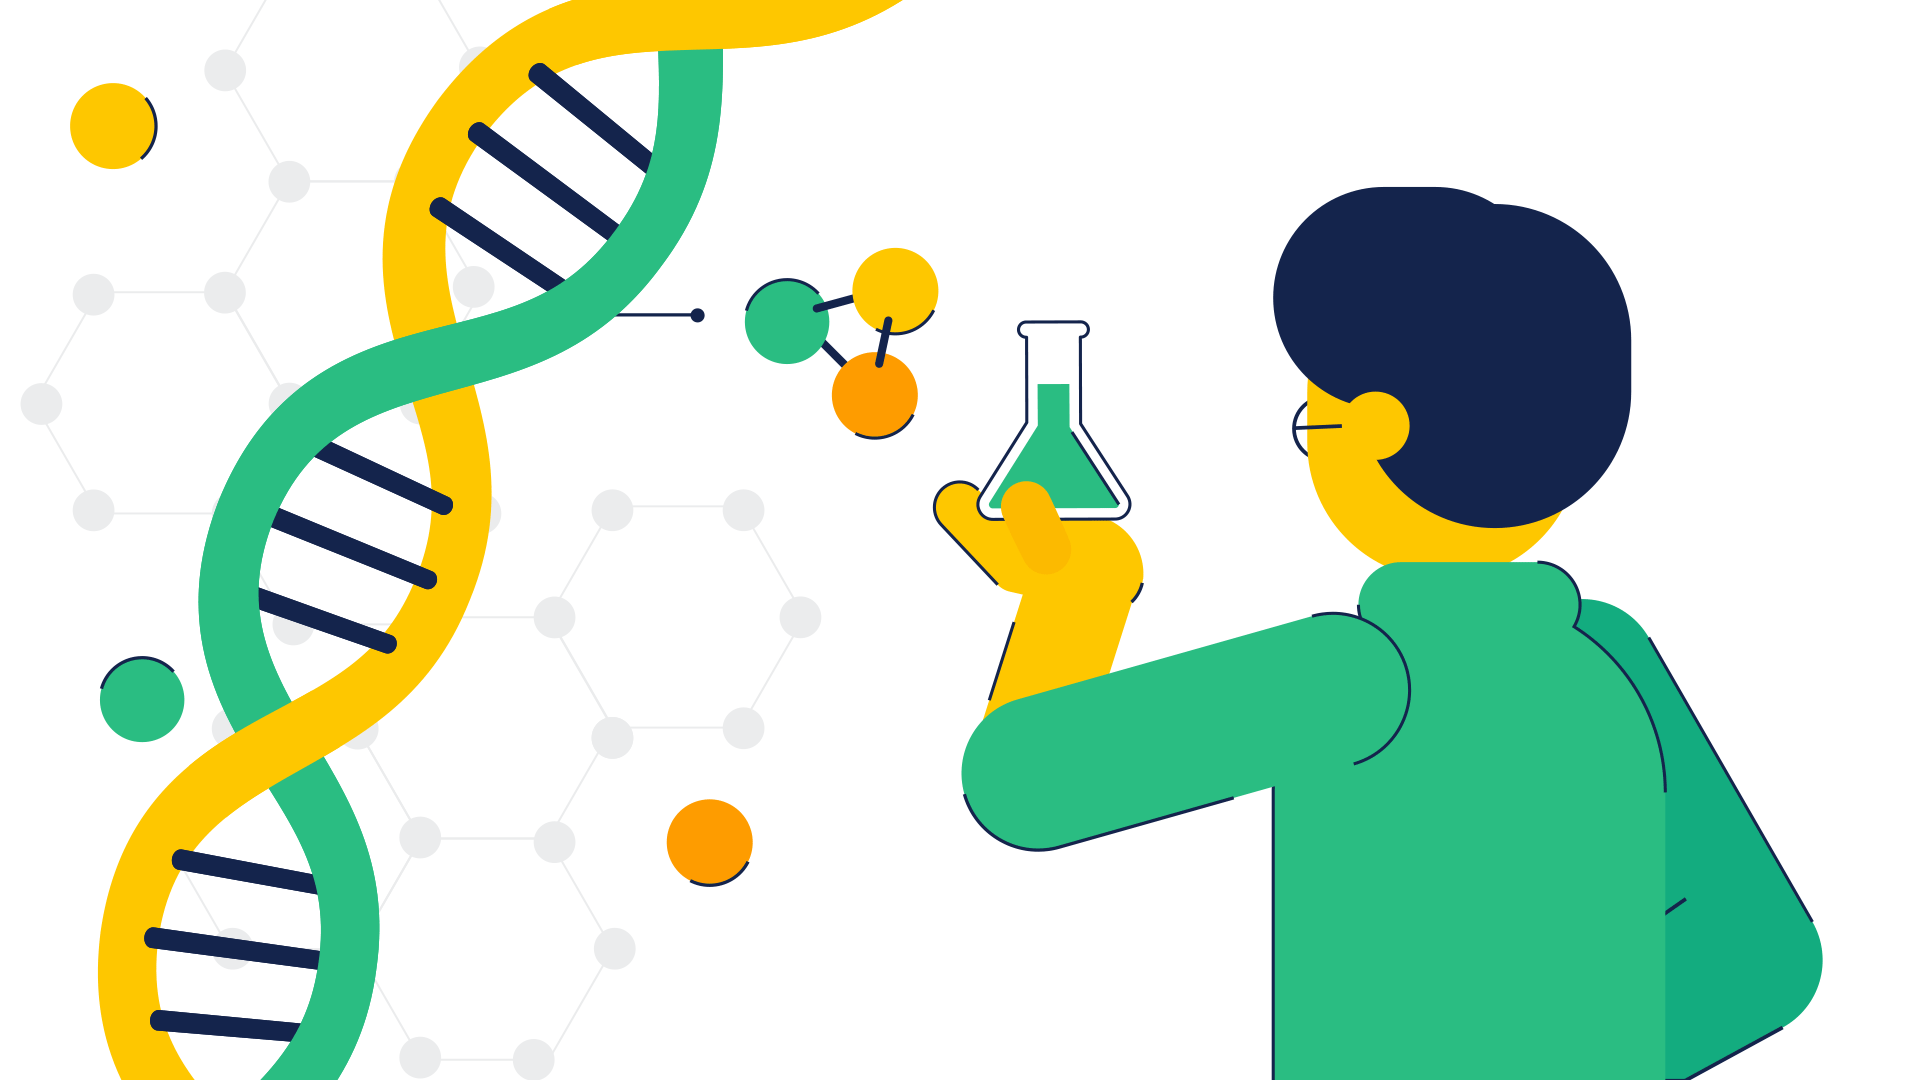 An illustration of a person holding a beaker, and a strand of DNA.